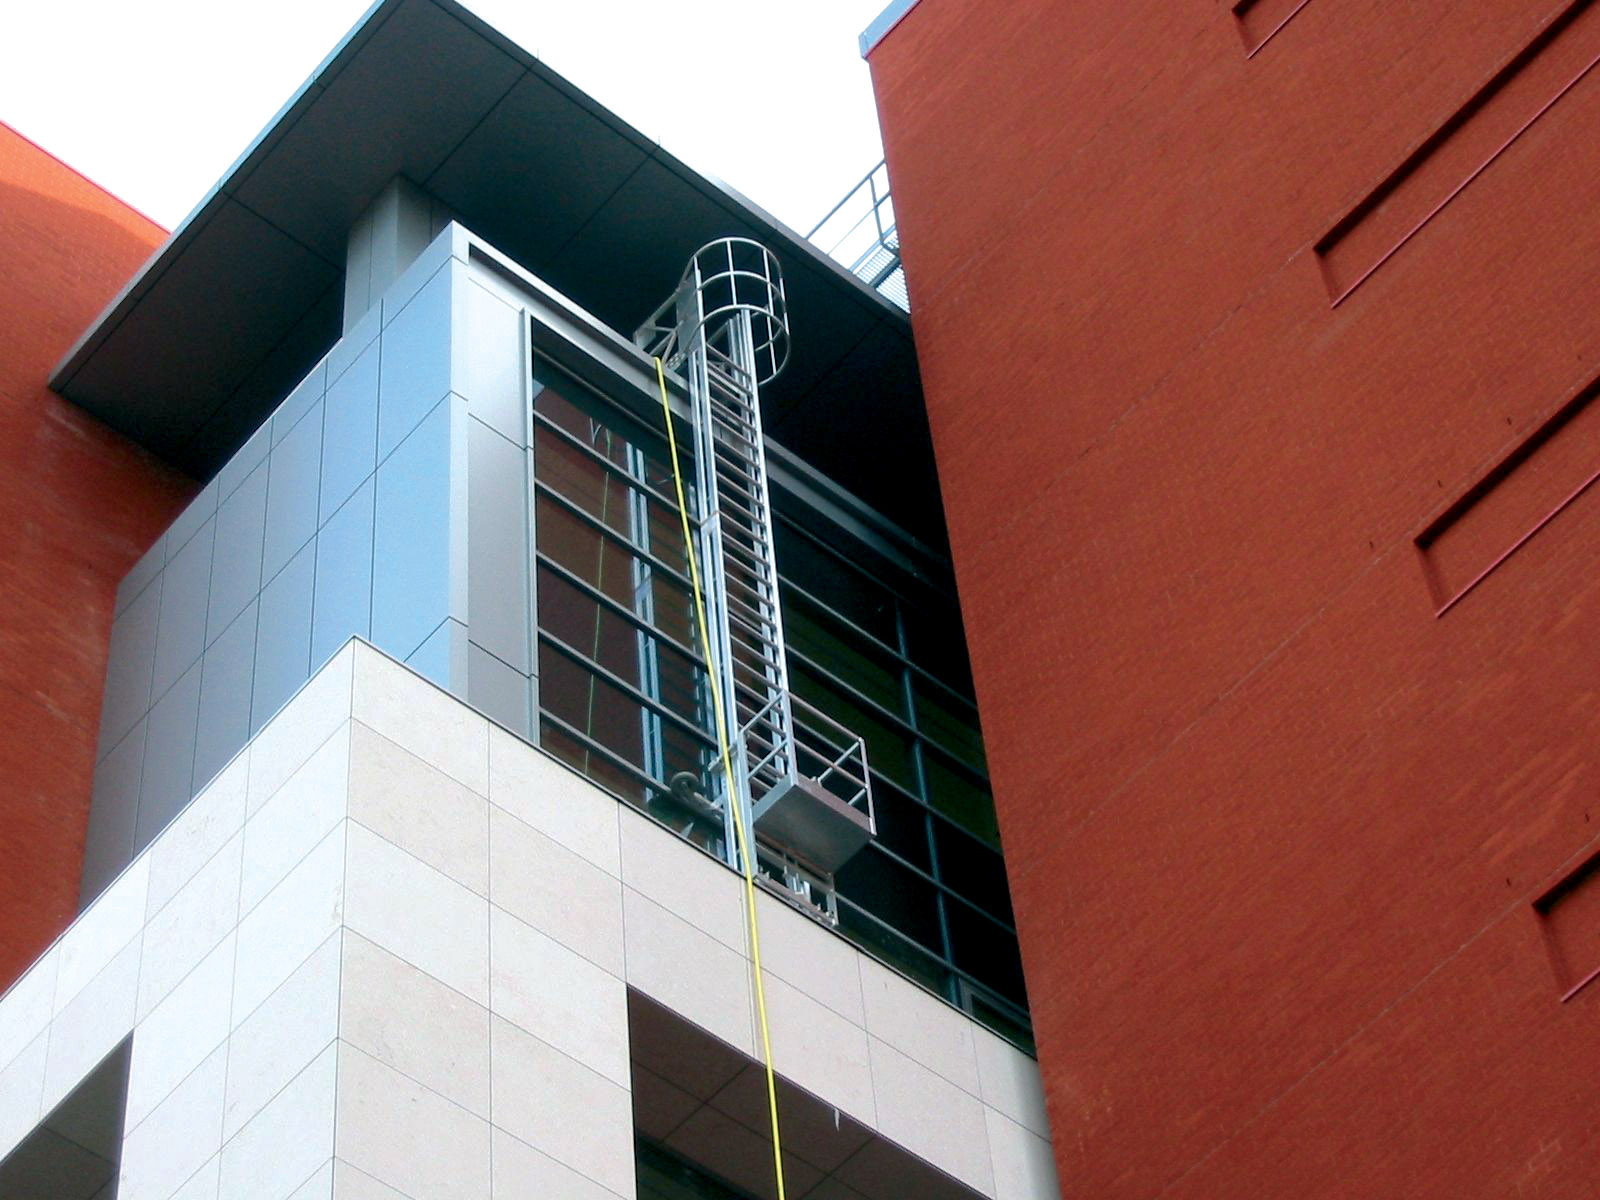 Mobile hangladder with gantry